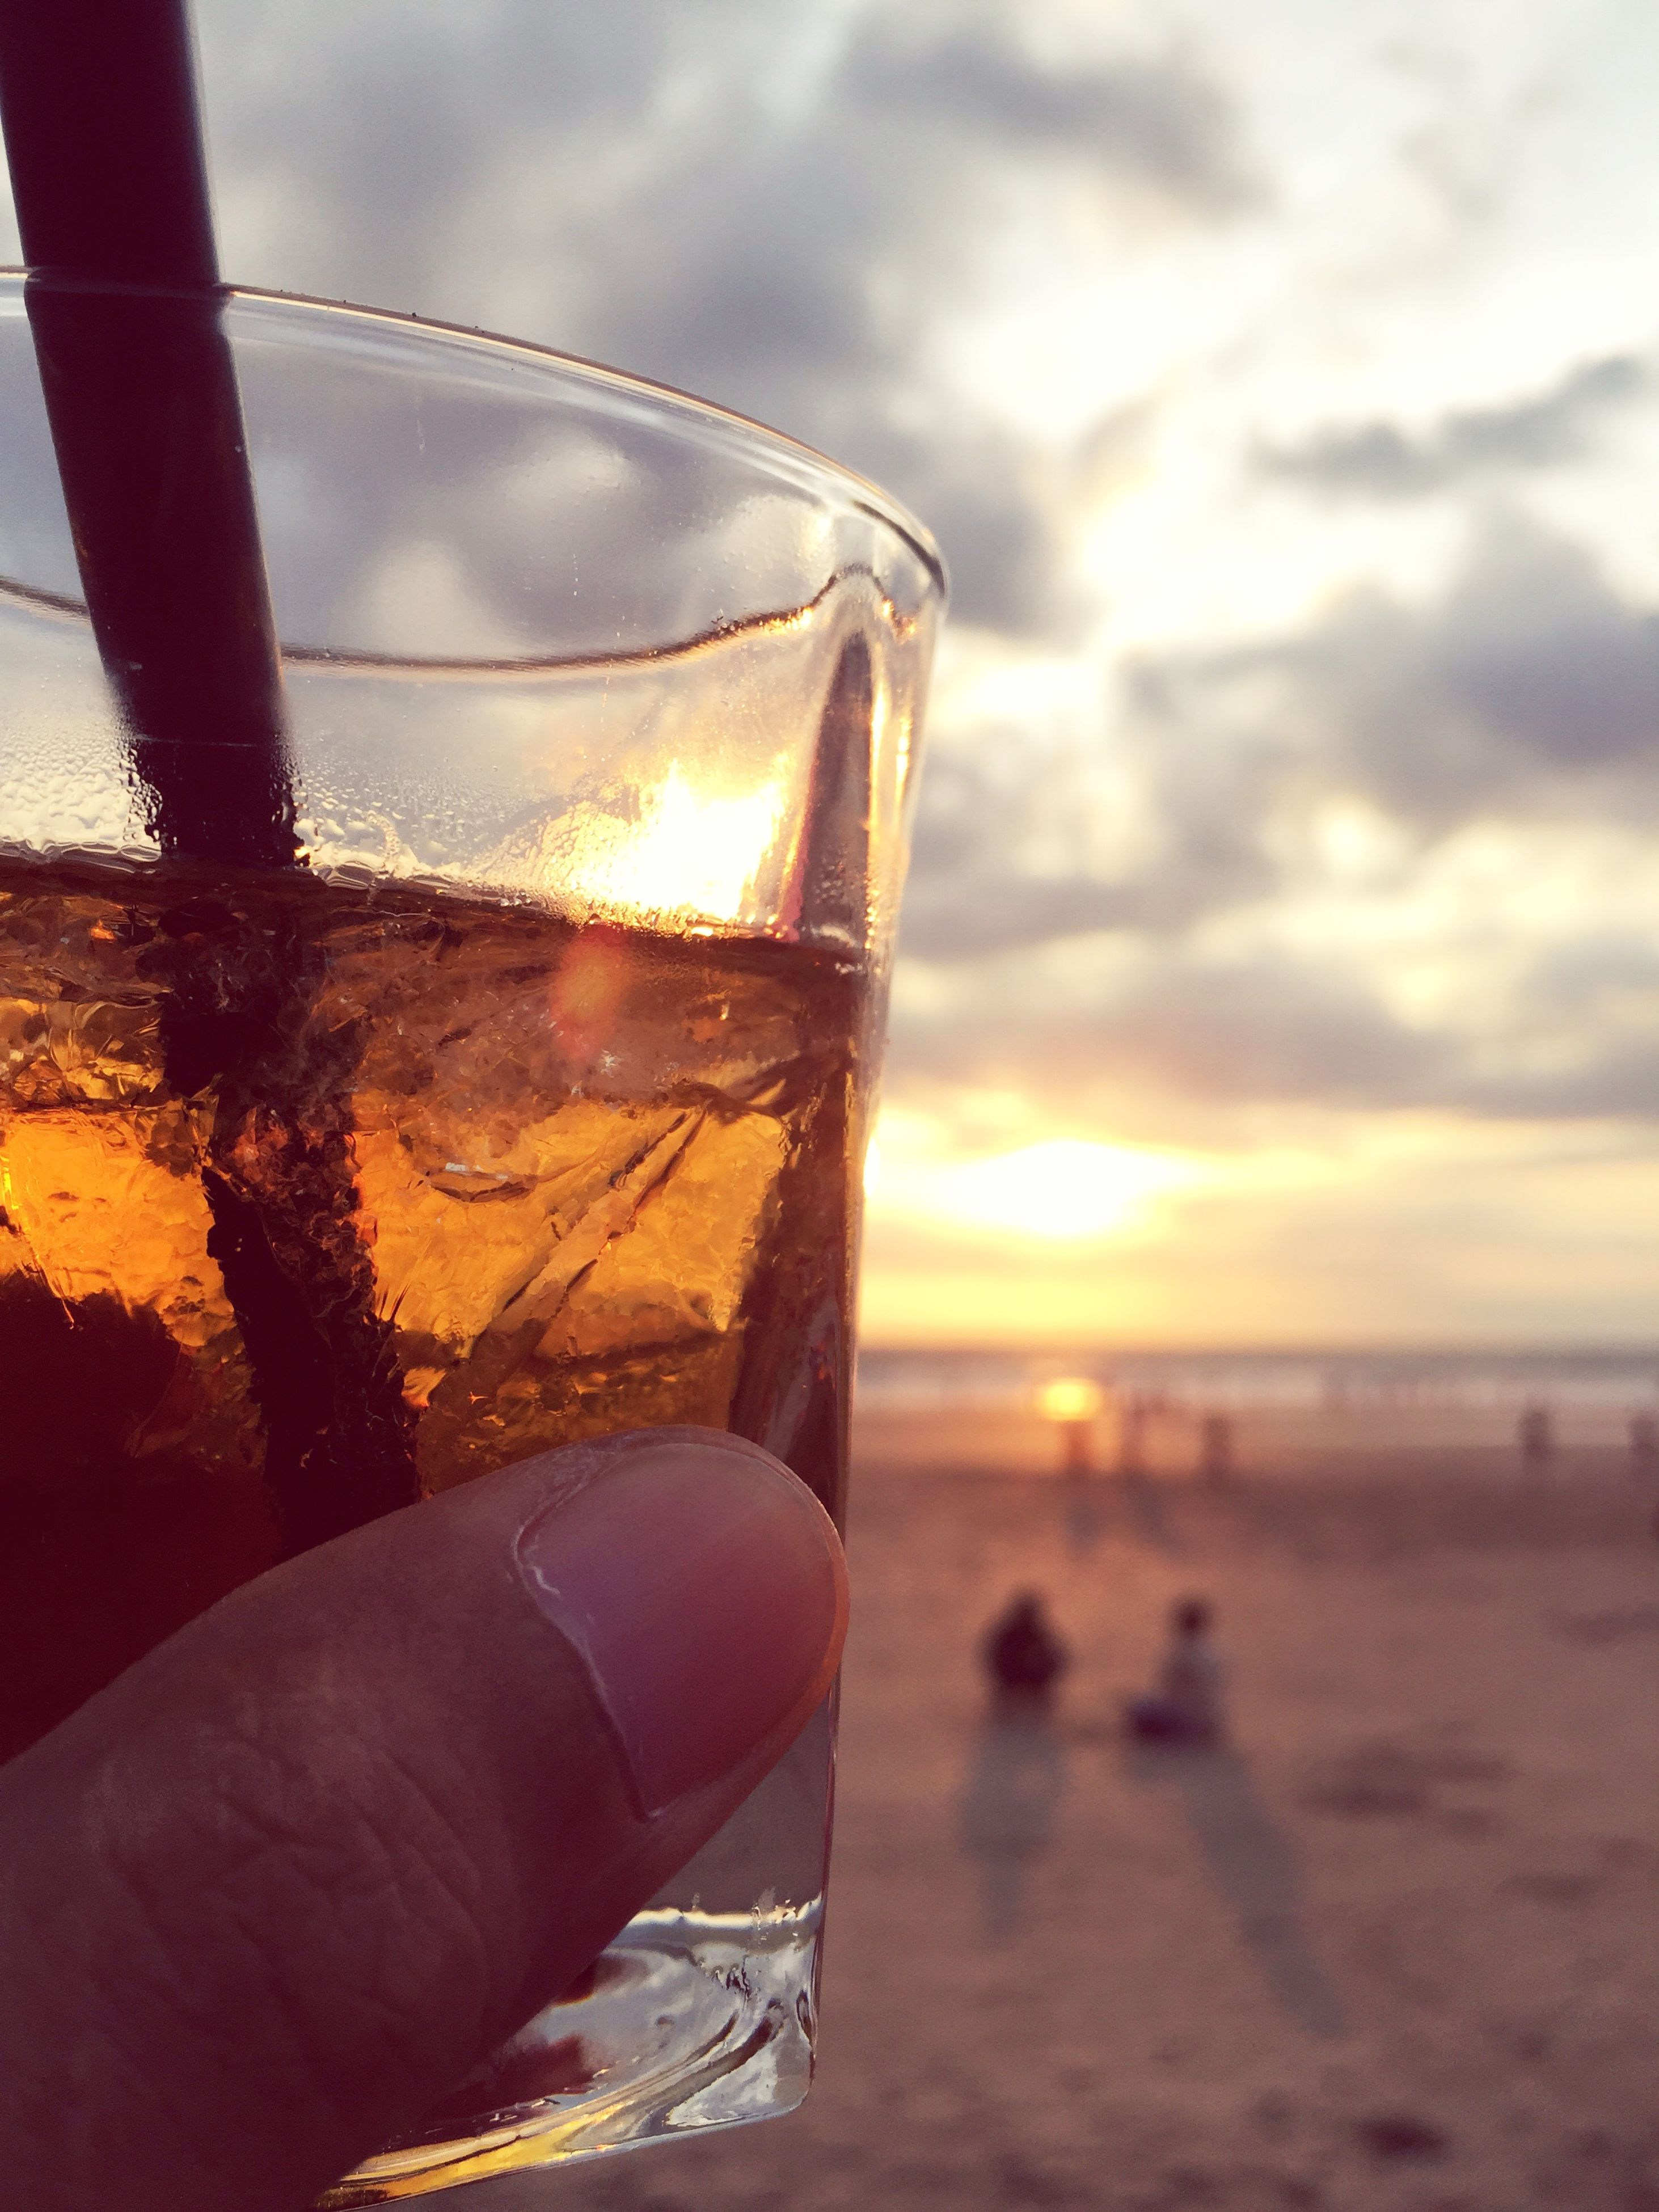 sunset, beach, sky, sea, focus on foreground, close-up, orange color, horizon over water, sun, part of, water, drink, sunlight, cloud - sky, shore, beauty in nature, scenics, nature, outdoors, glass - material